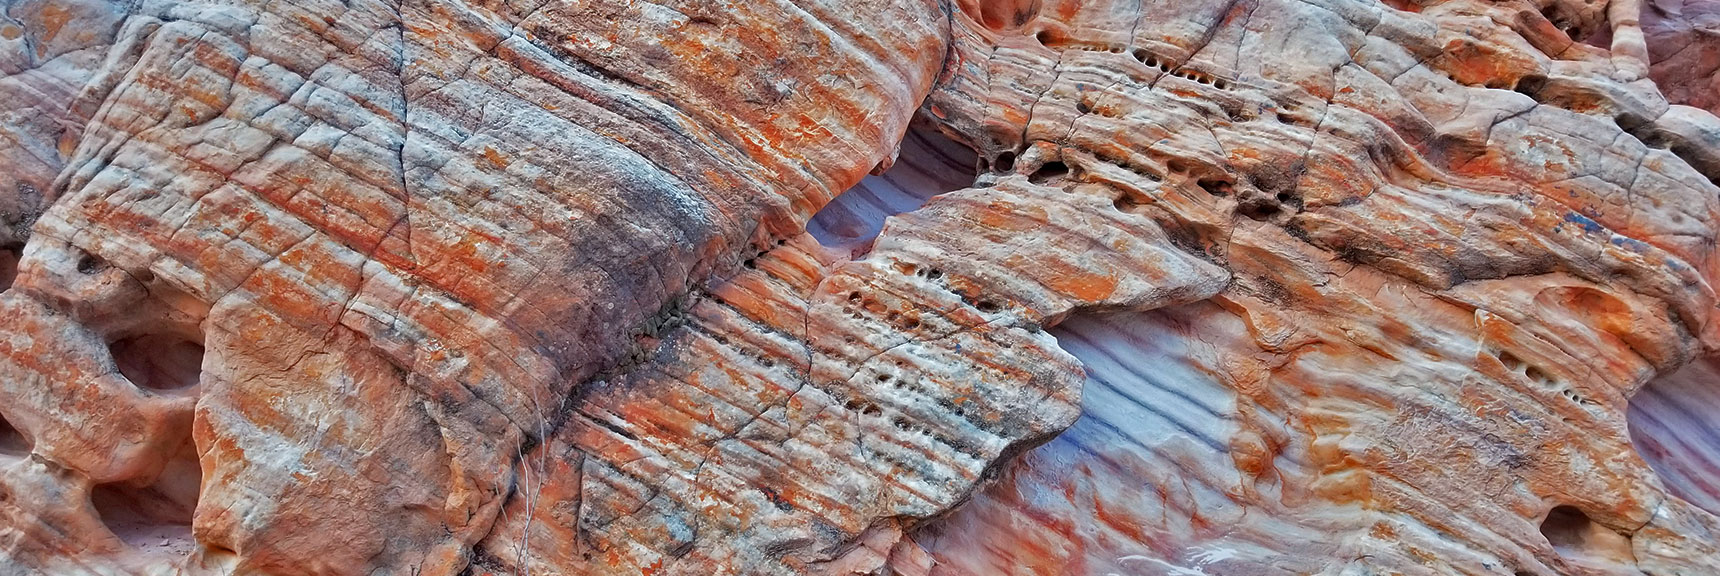 Colorful Fire Wave Rock Formations in the Northern Canyon Wash on Prospect Trail in Valley of Fire State Park, Nevada